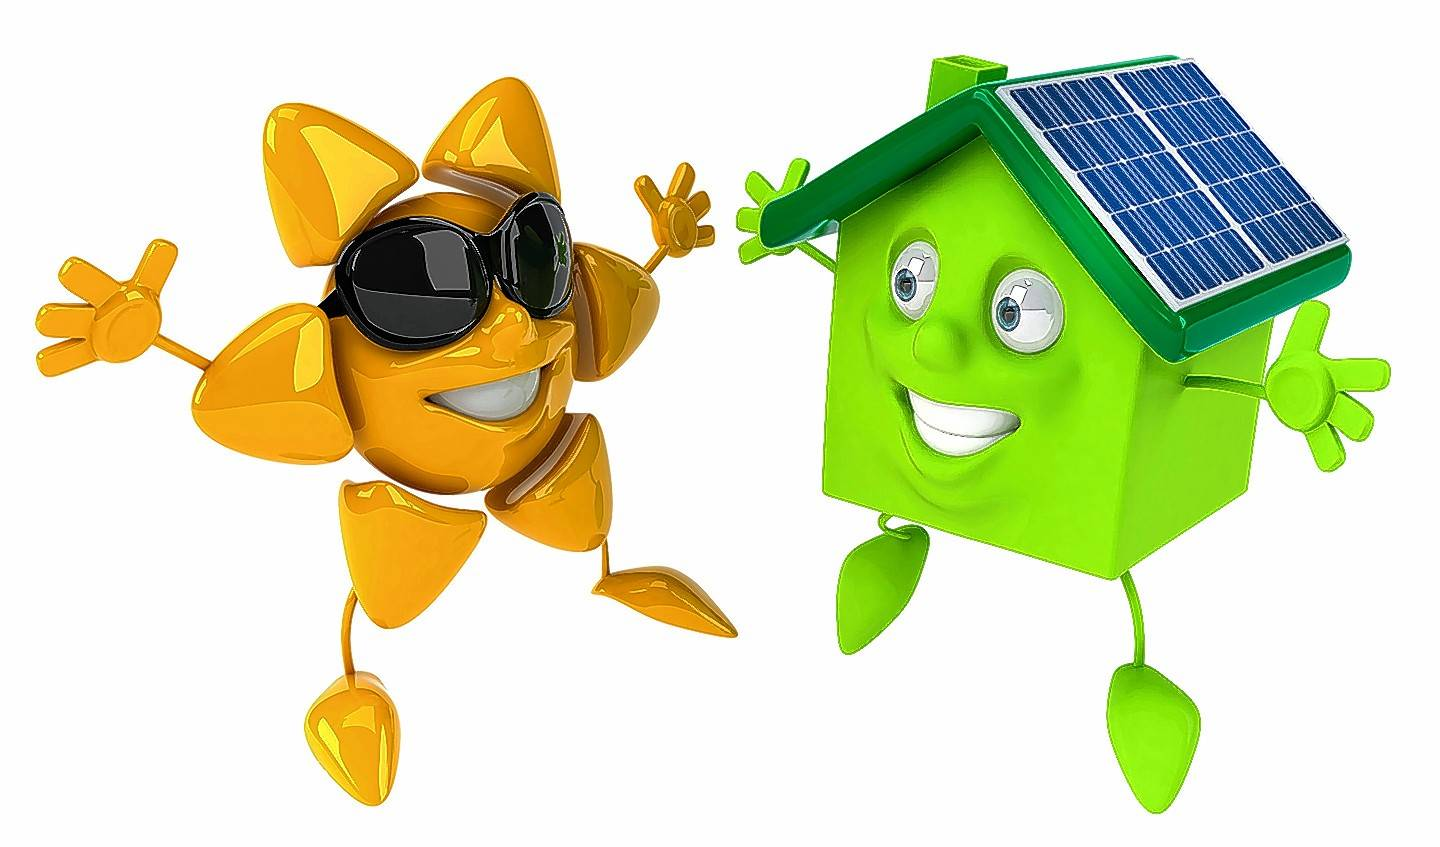 There's even more reason to love the sun after you realize that by installing solar panels, you can cut your energy bill, and in some cases, even earn money by selling your excess power back to the electric company.